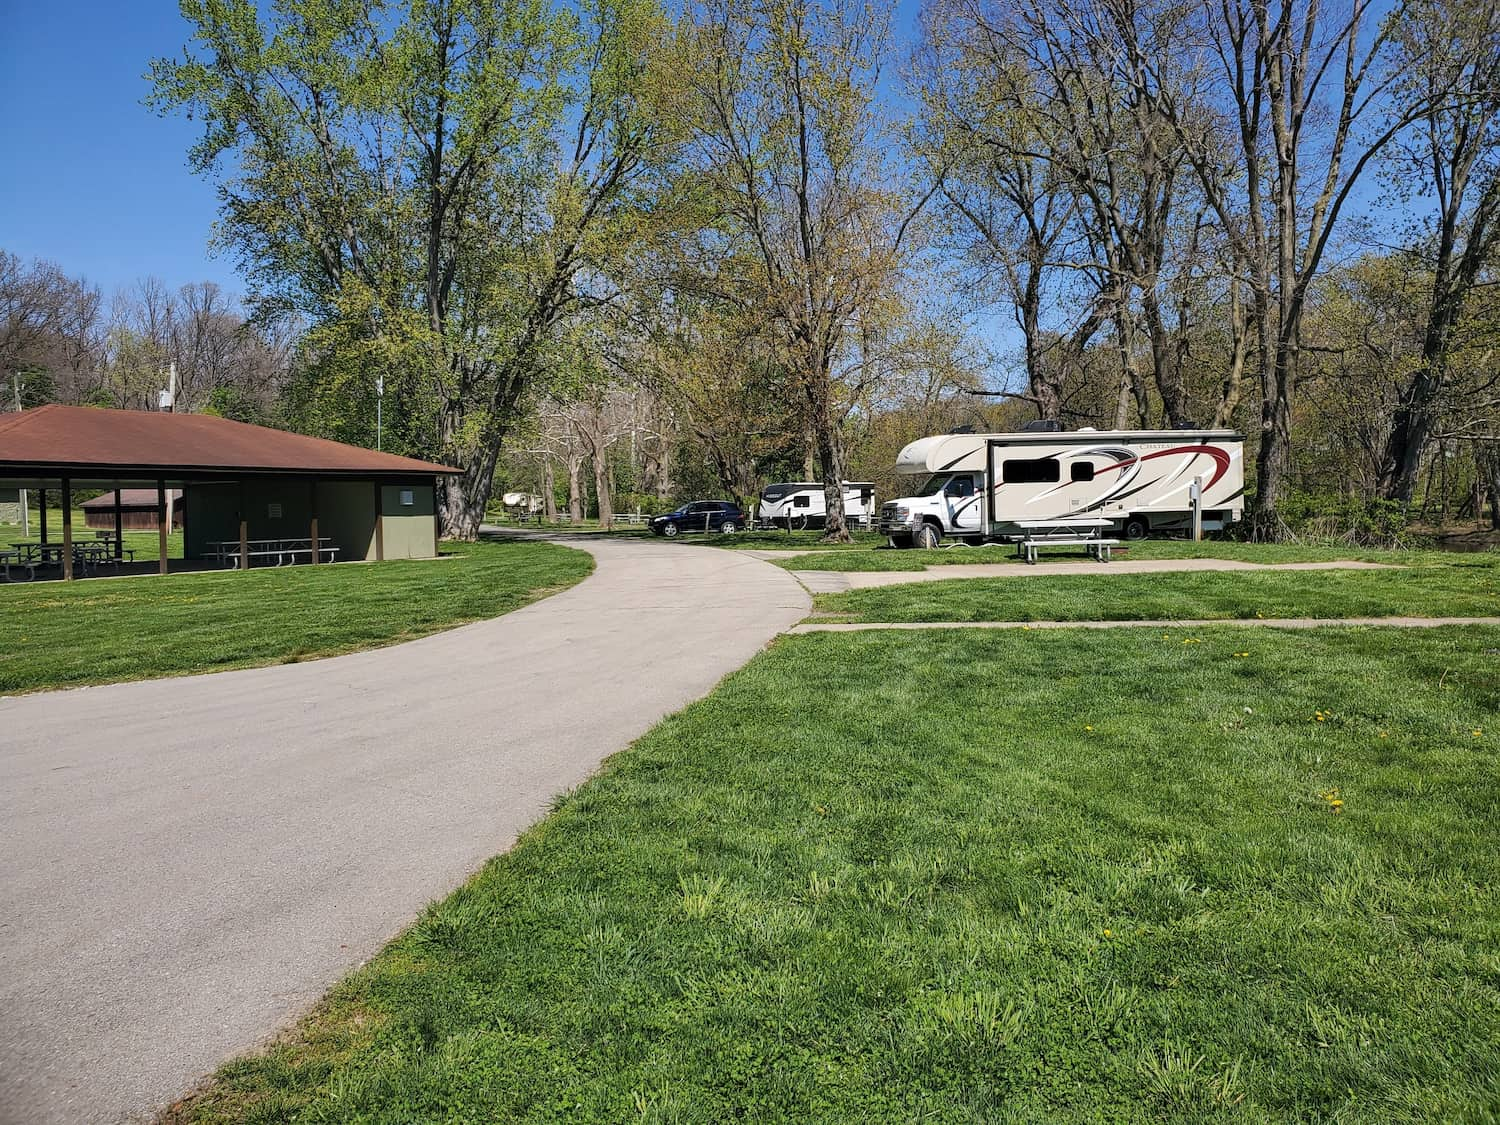 rvs parked at campground